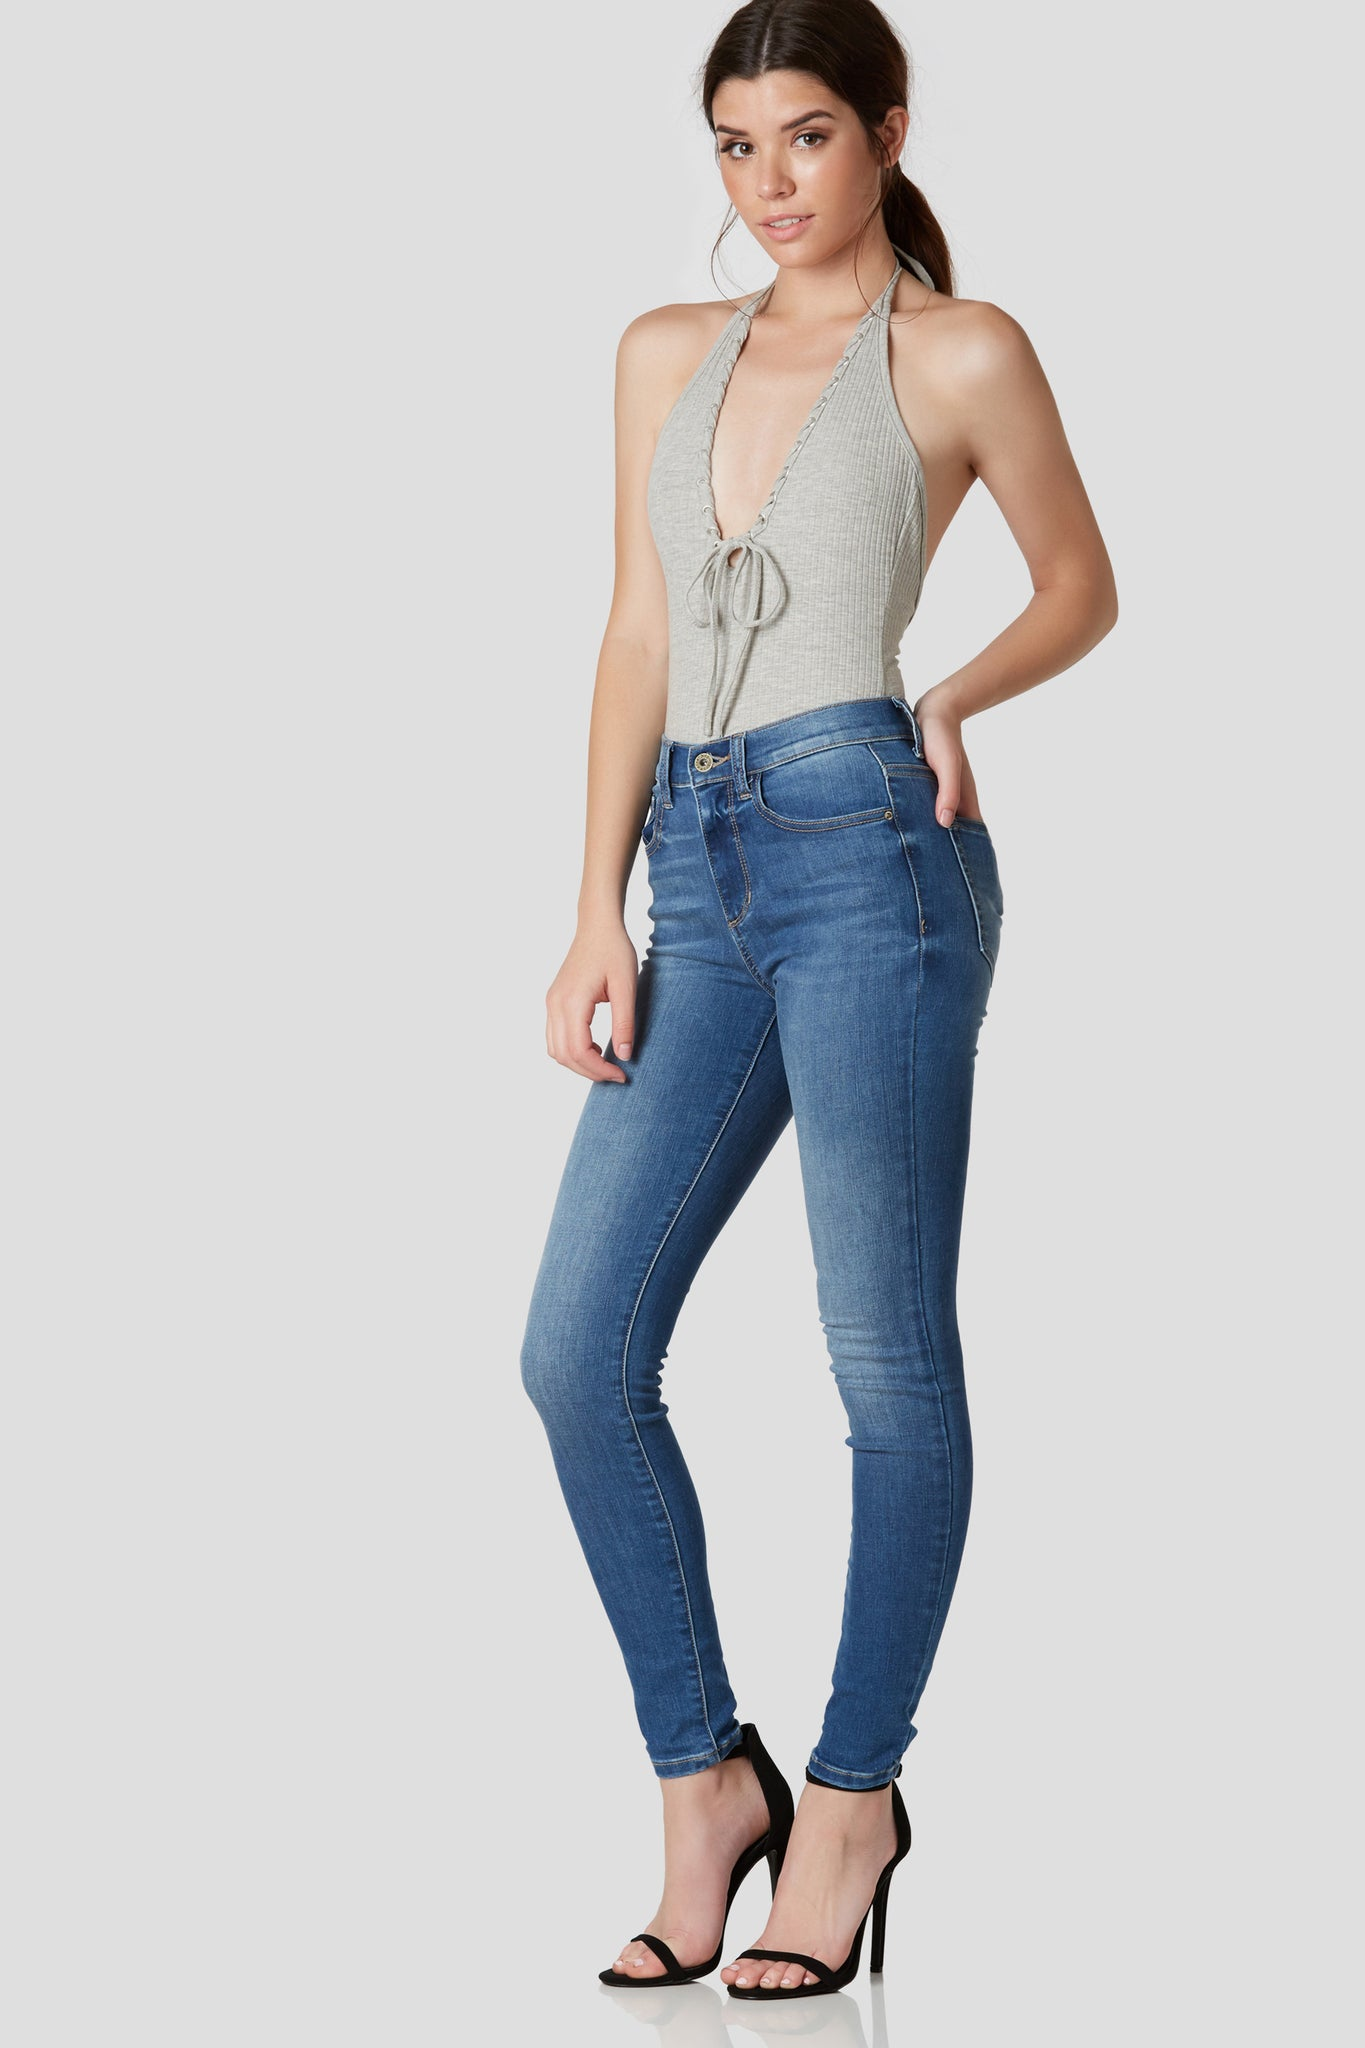 Classic blue high waist skinny jeans with stretchy material for flattering fit. 5 pocket design with button and zip closure.